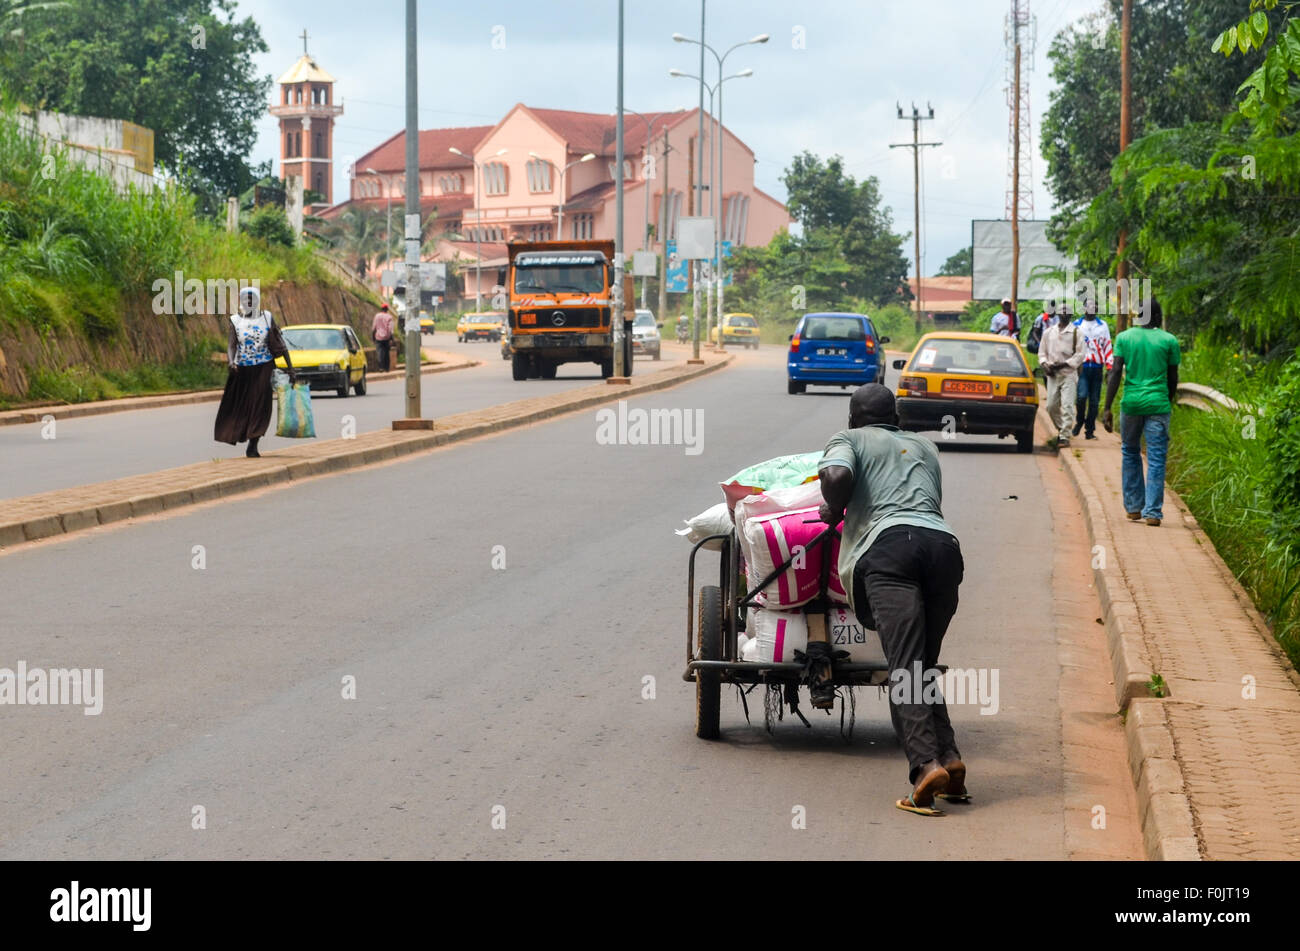 Man pushing a cart in the streets of Yaoundé, capital city of Cameroon - Stock Image